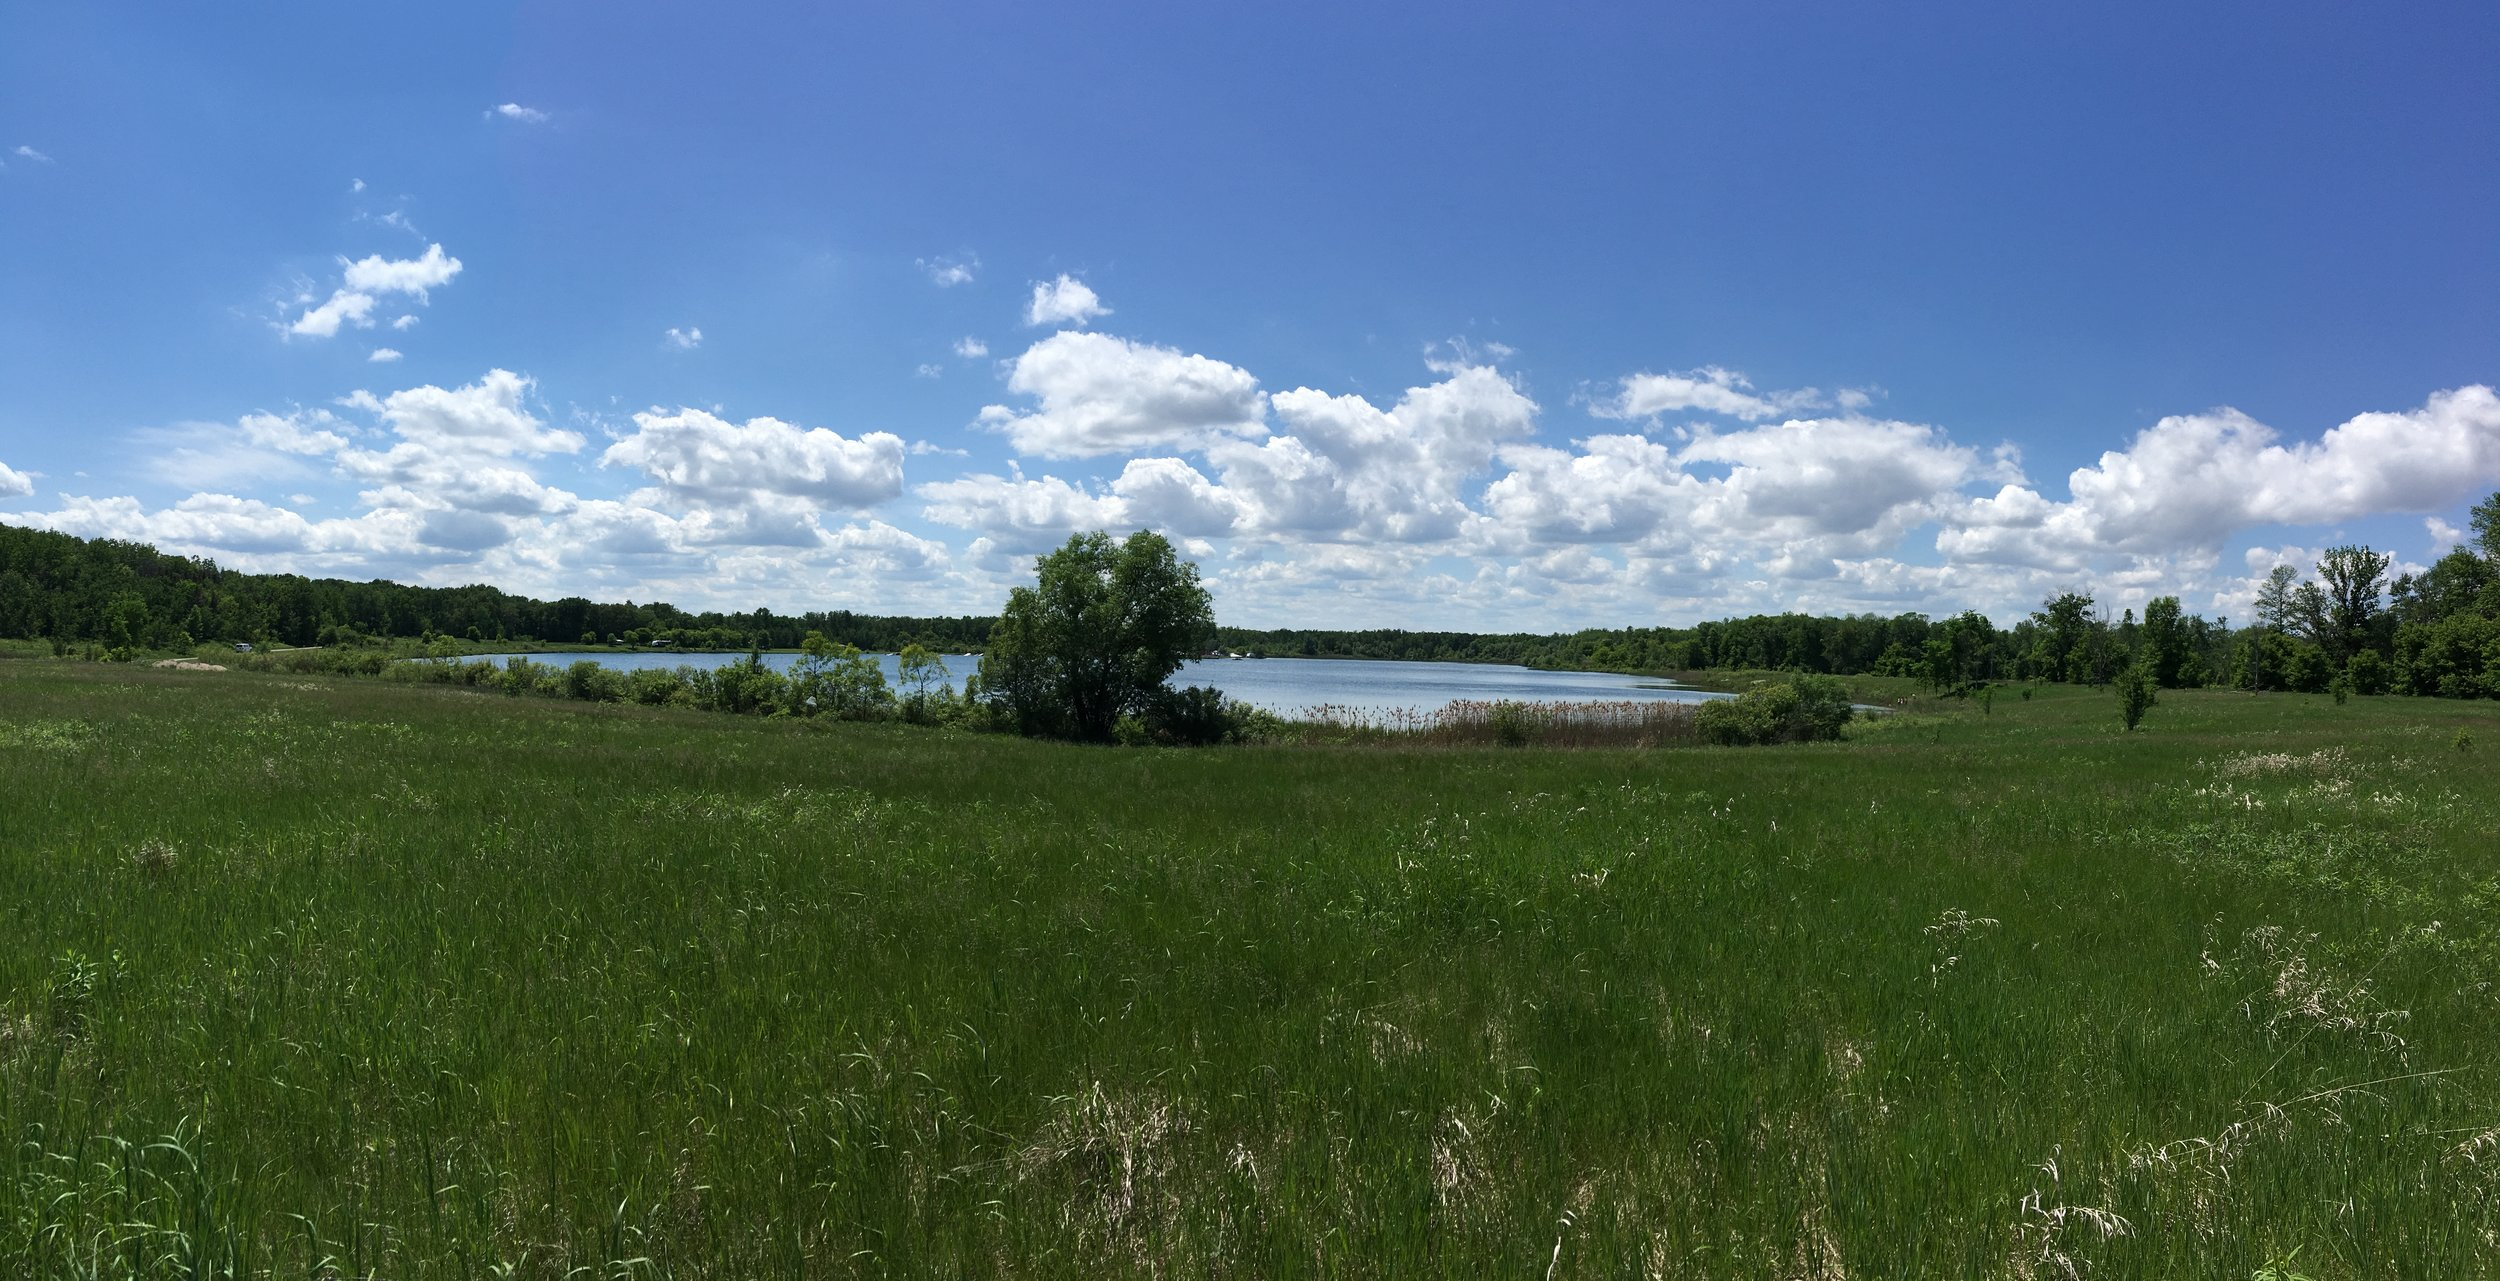 Spray Lake Water Sports Park - King Township, ON - Jun 8/18